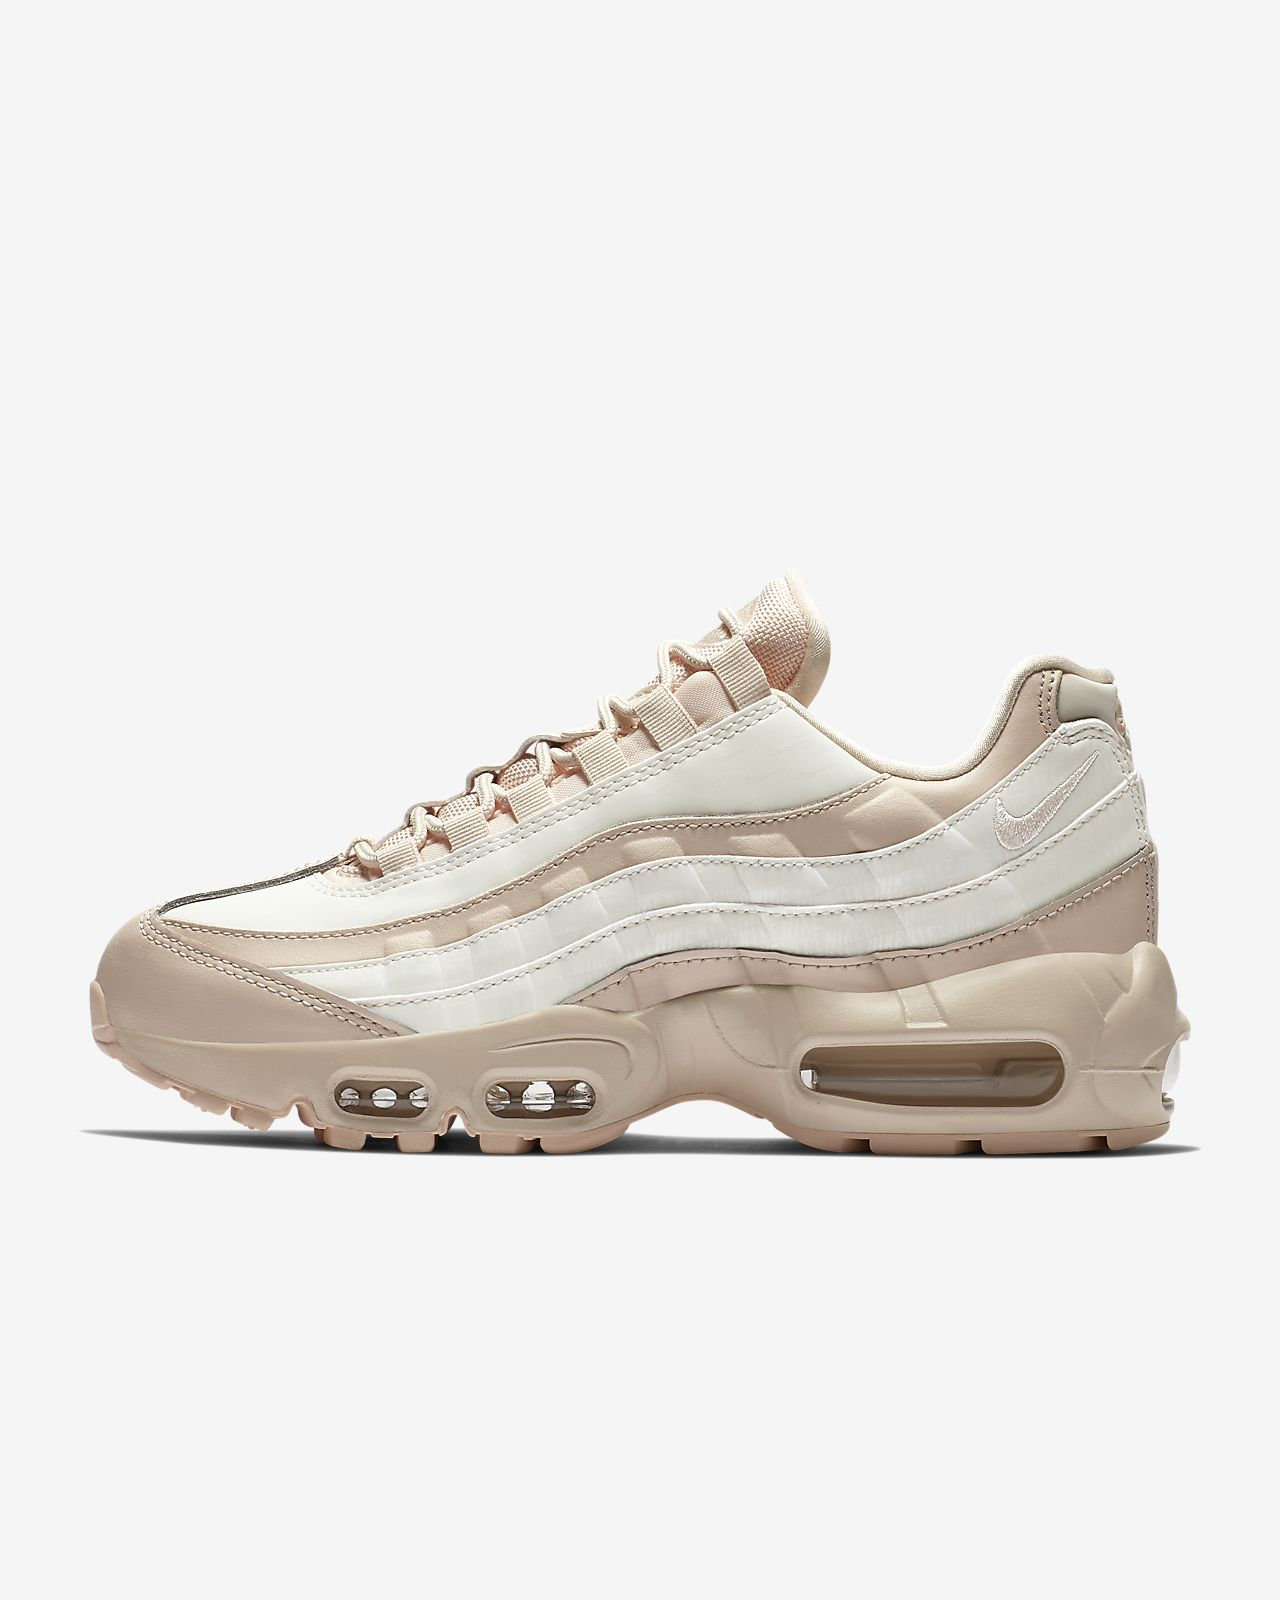 138d8638526 Nike Air Max 95 LX Women s Shoe. Nike.com GB